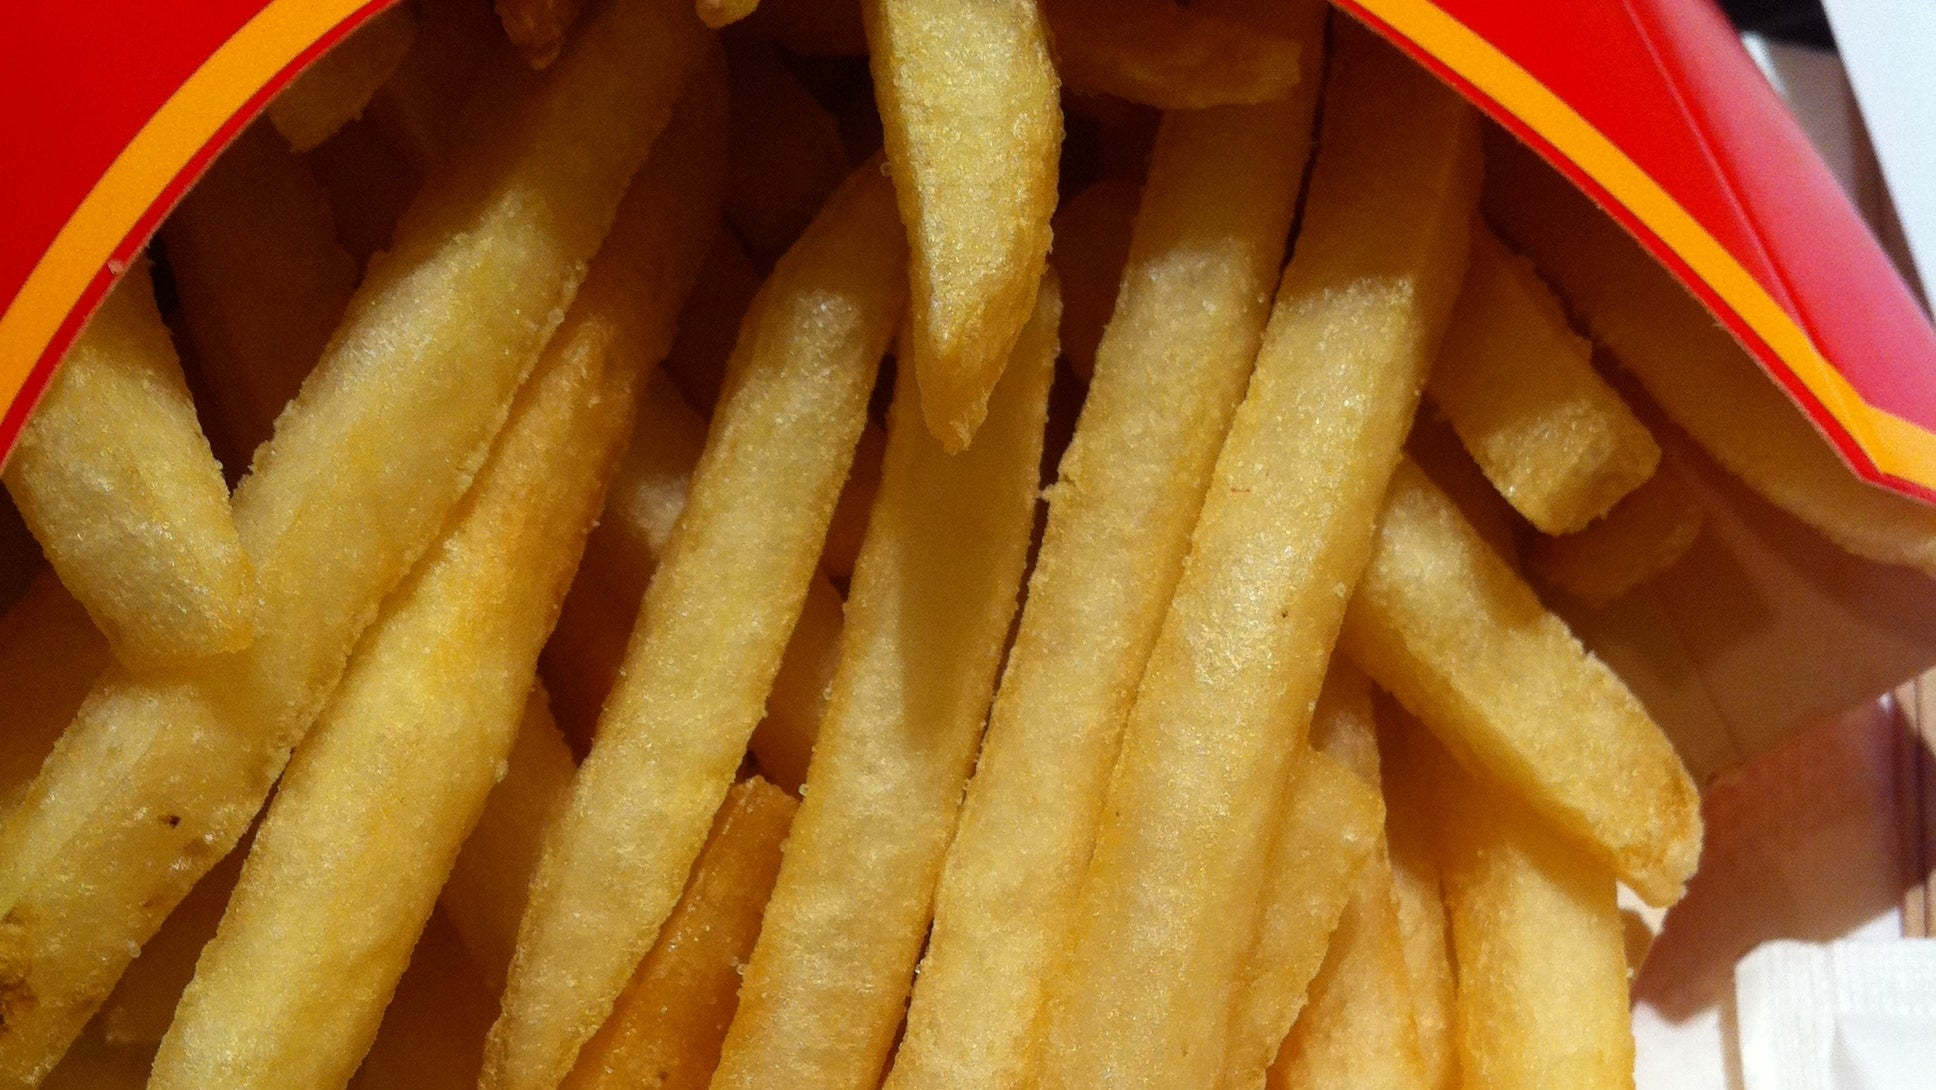 No, McDonald's French Fries Will Not Cure Baldness